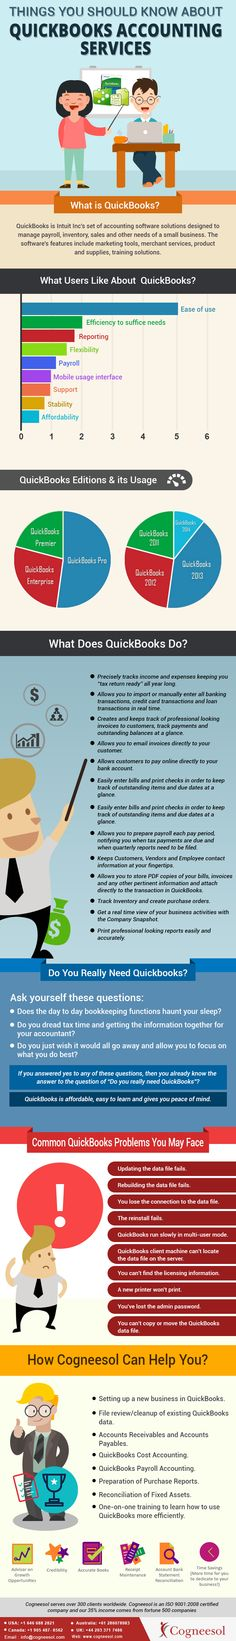 How #QuickBooks Accounting Services Help to Manage Your Business? #infographic